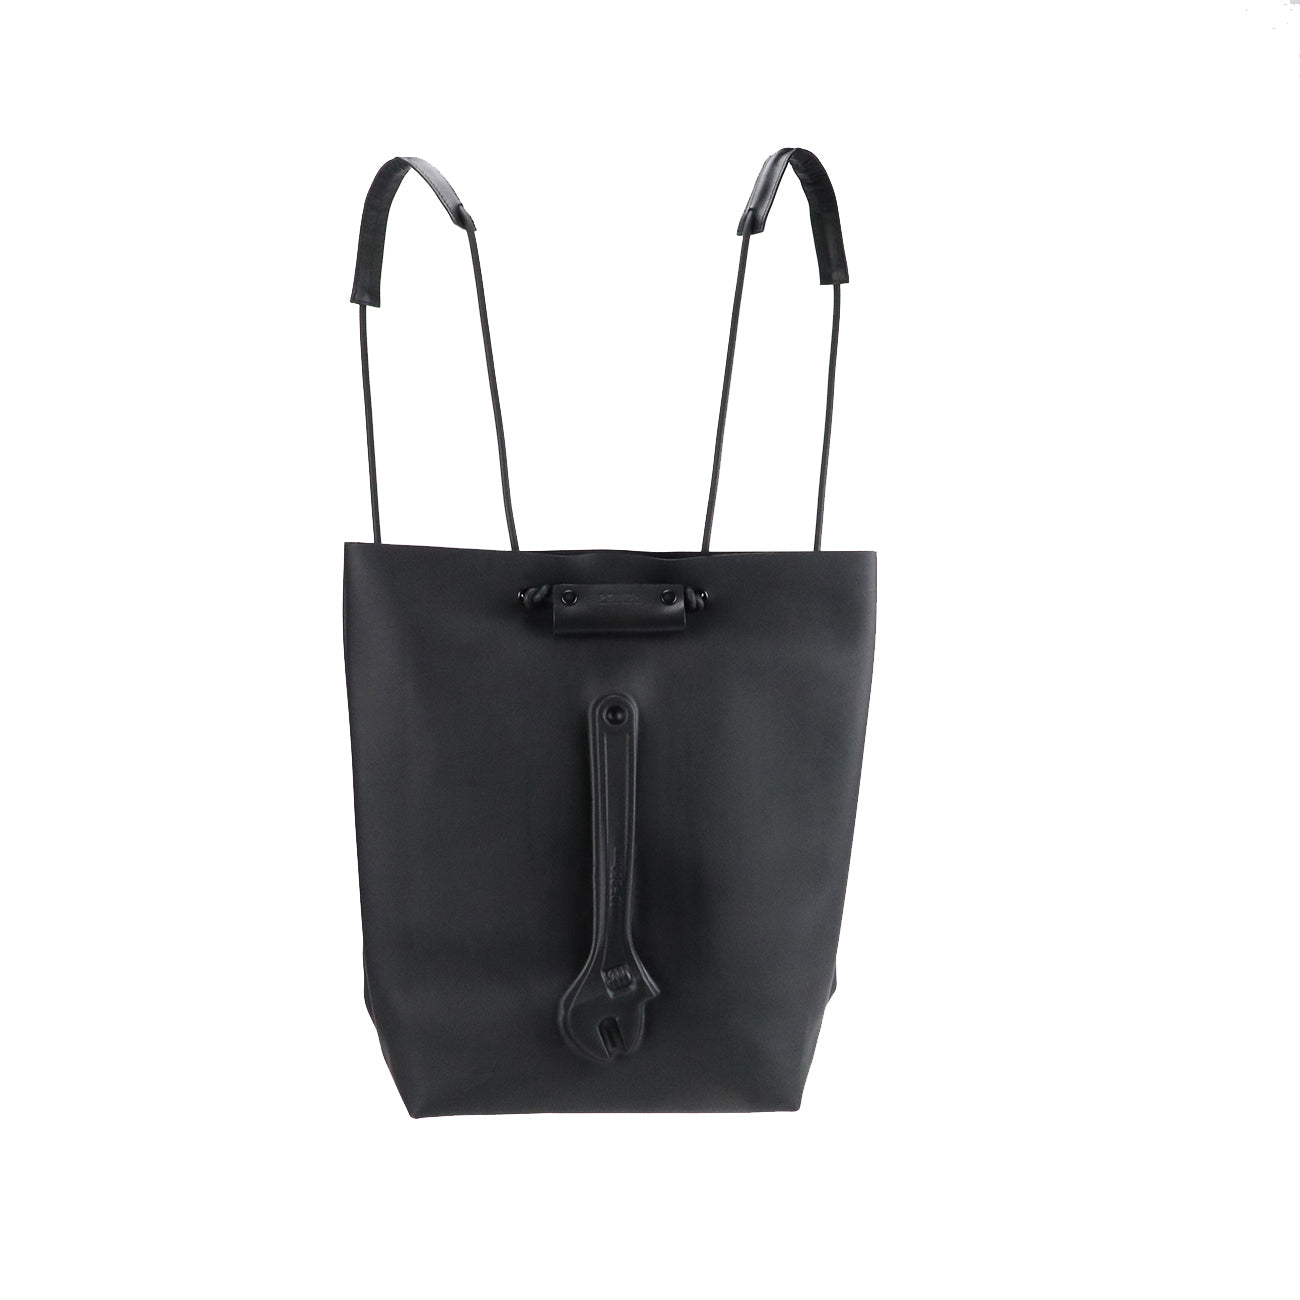 VF backpack/shoulder bag/handbag